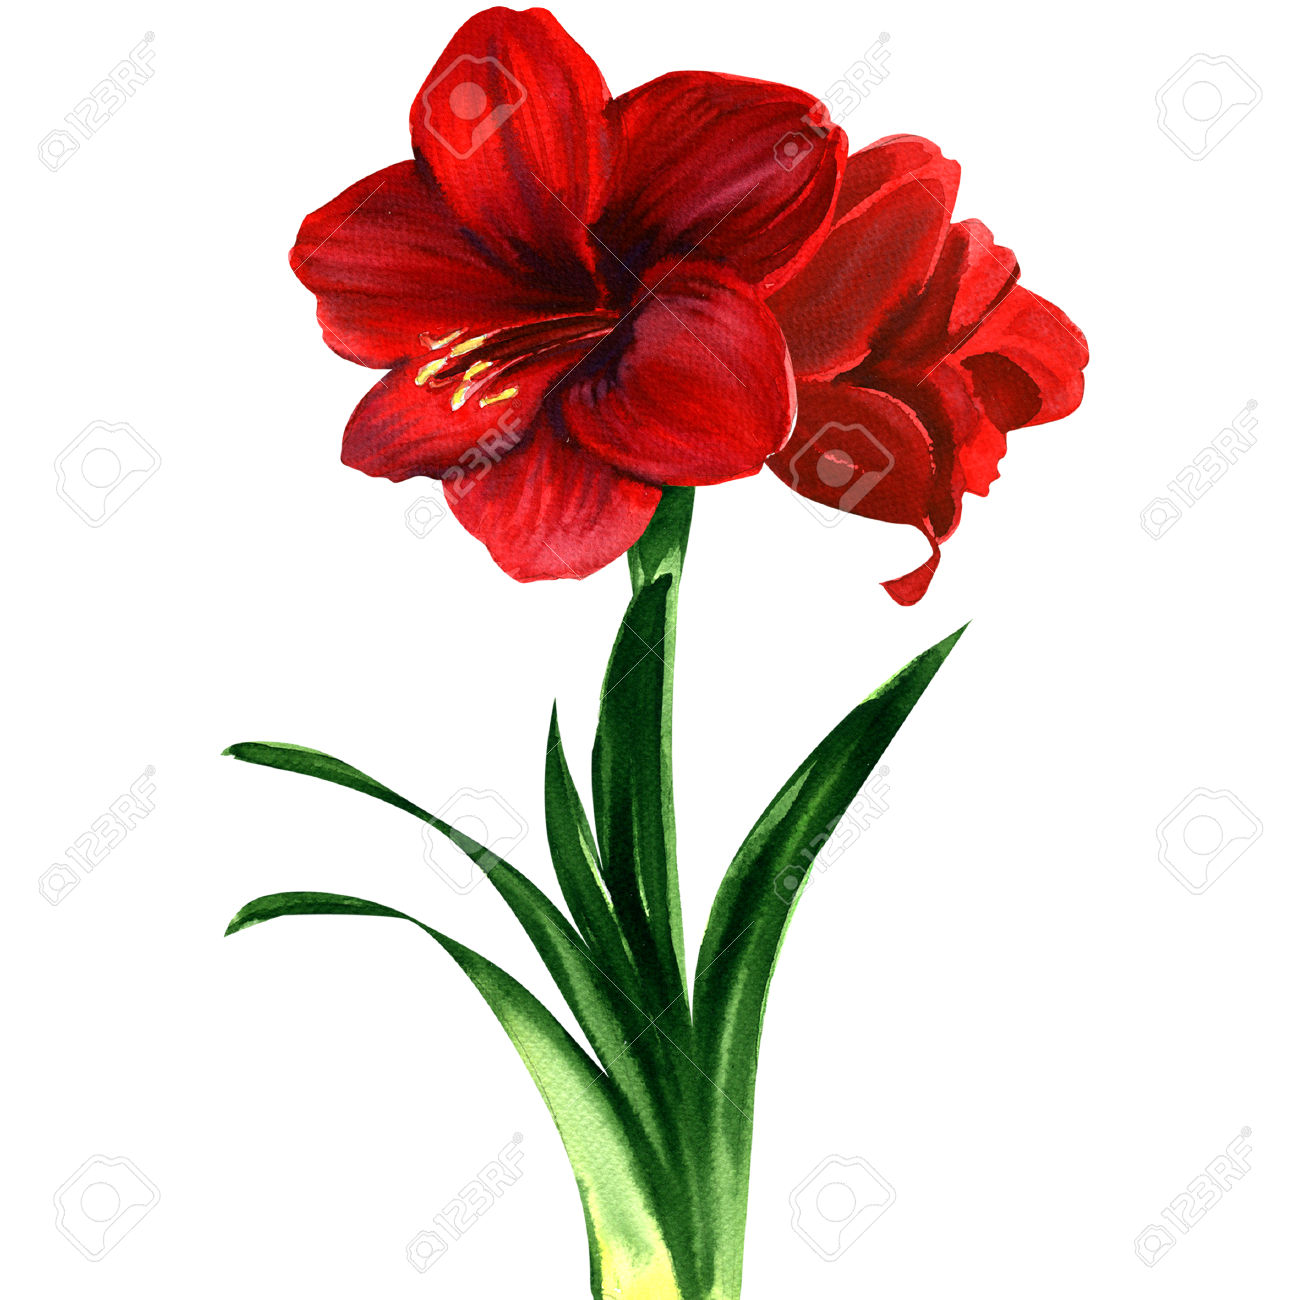 386 Amaryllis Stock Vector Illustration And Royalty Free Amaryllis.